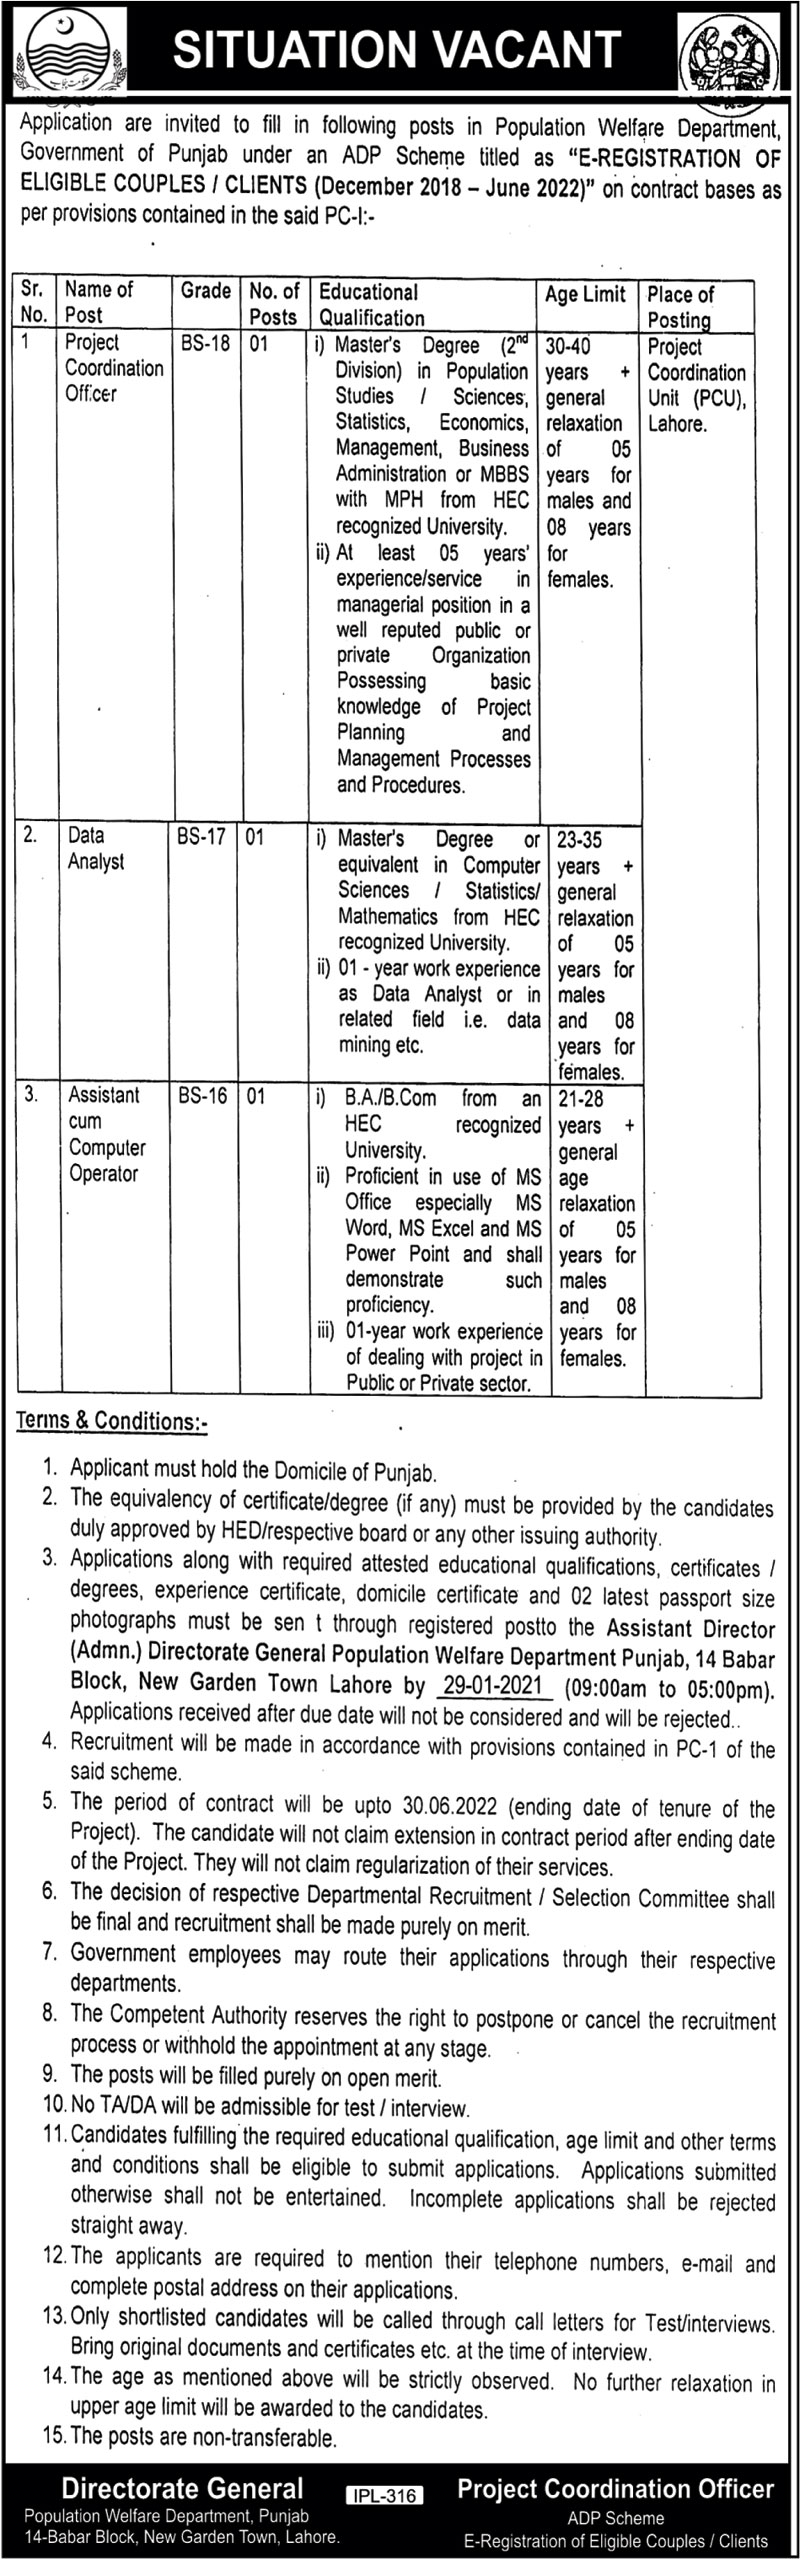 Population Welfare Department jobs newspaper ad for Data Analyst in Lahore on 2021-01-14